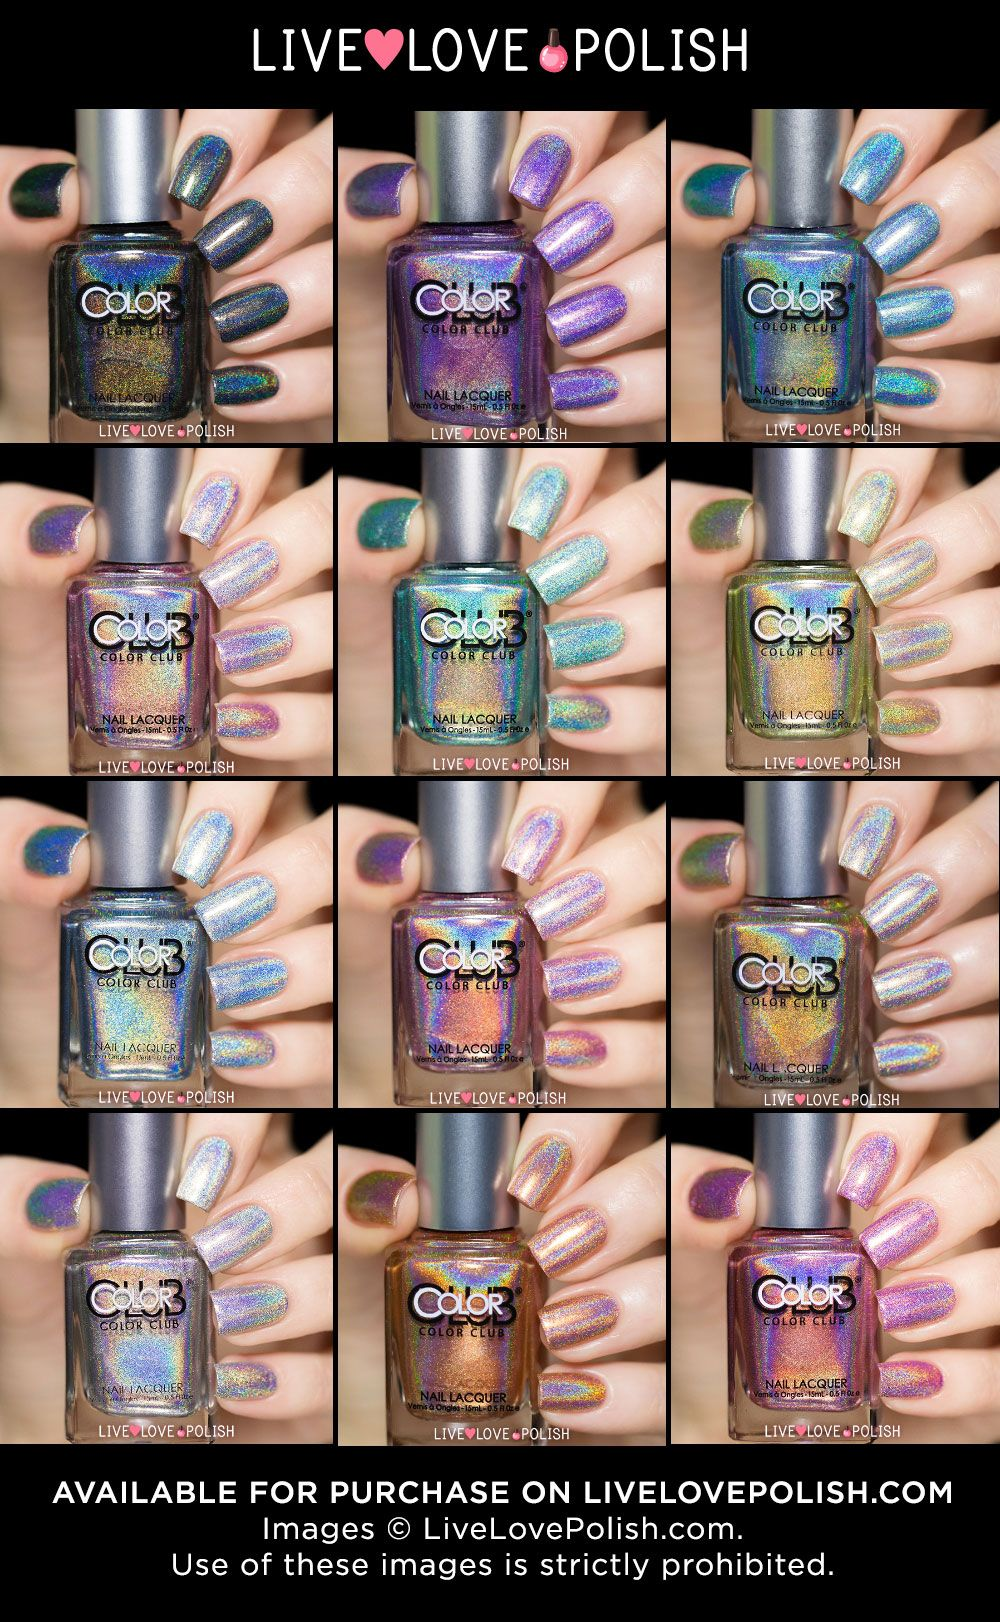 Pin by Paulette Otto-Cervantes on Nail Design | Color club nail ...